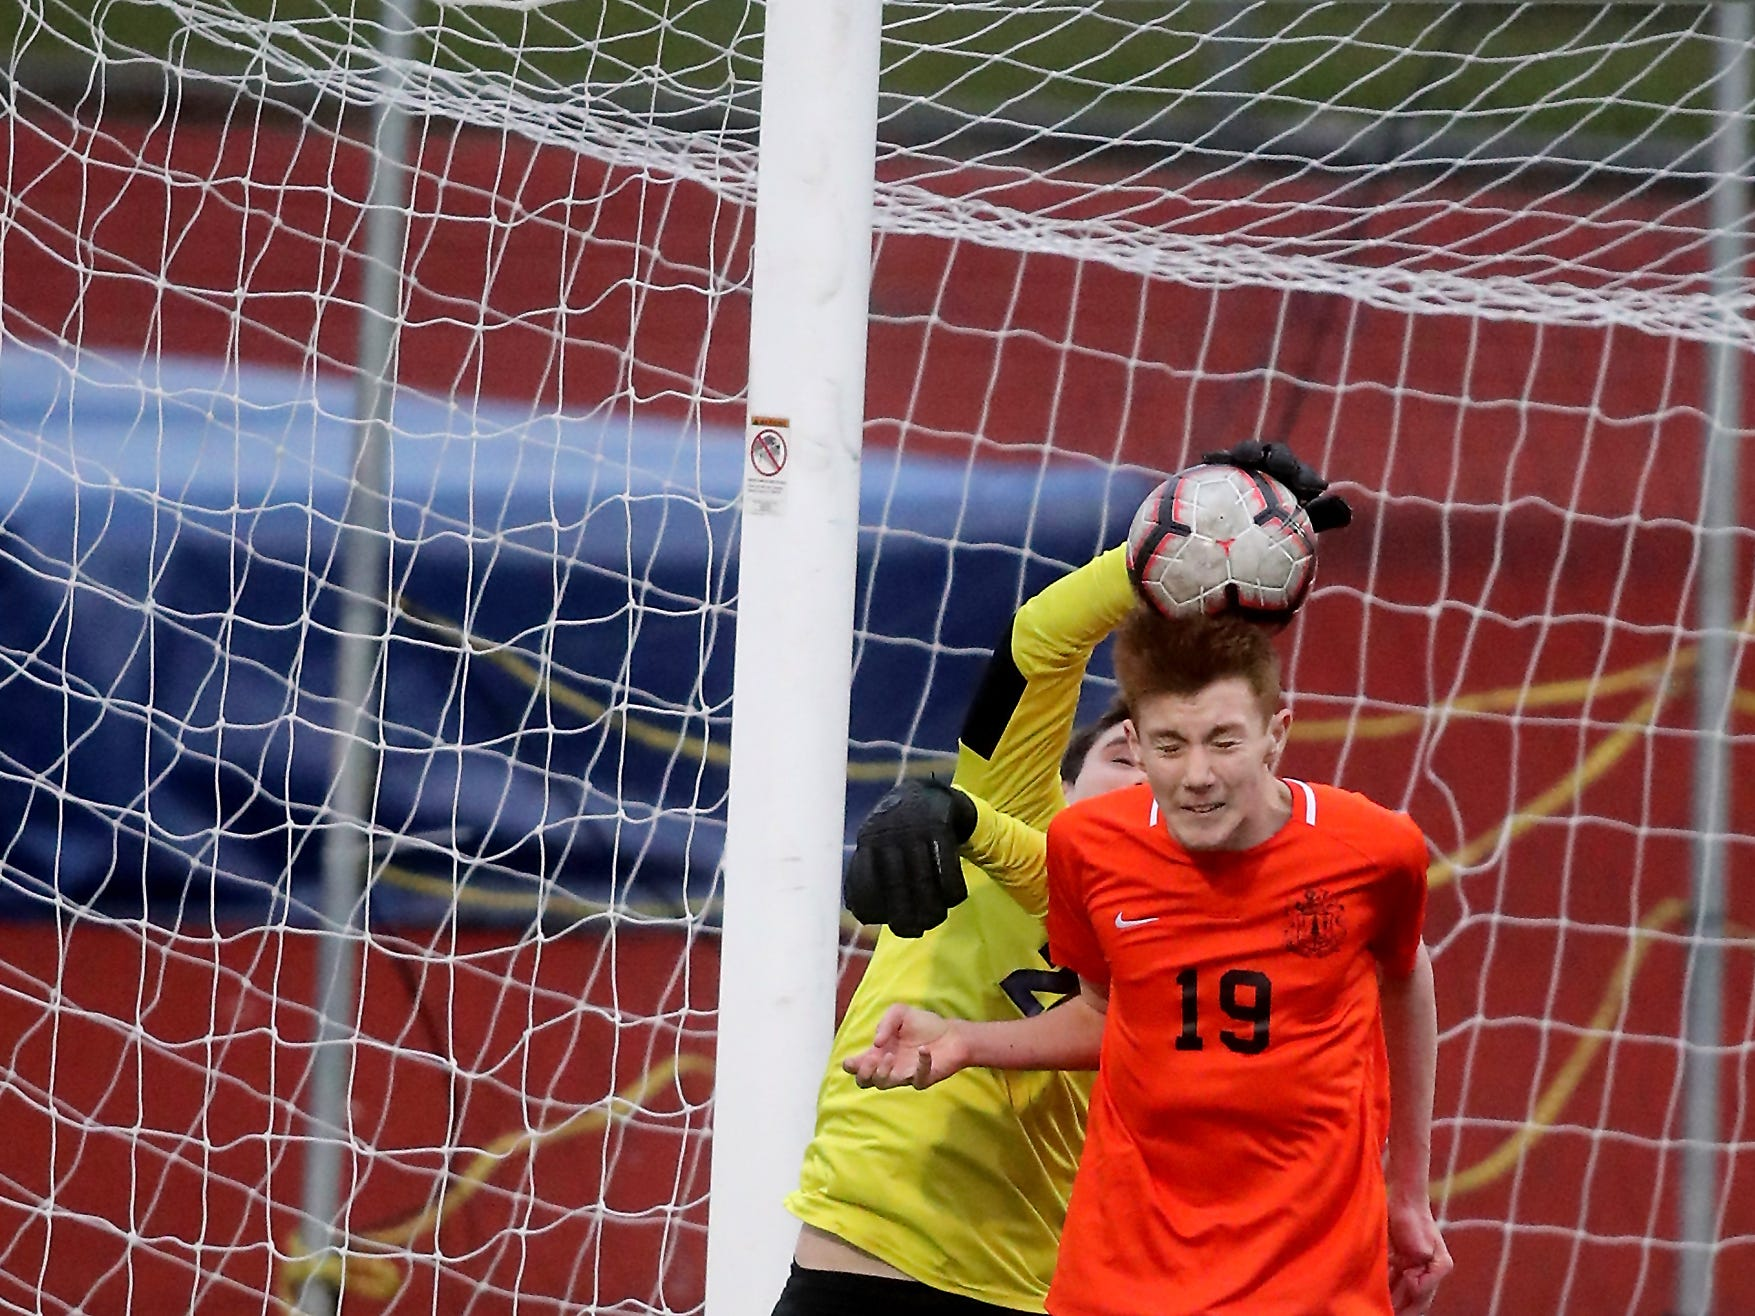 North Thurston goalie Zachary Mayer gets his hand on a header by Central Kitsap's Garret Ruth (19) during their game at Silverdale Stadium on Thursday, May 2, 2019.